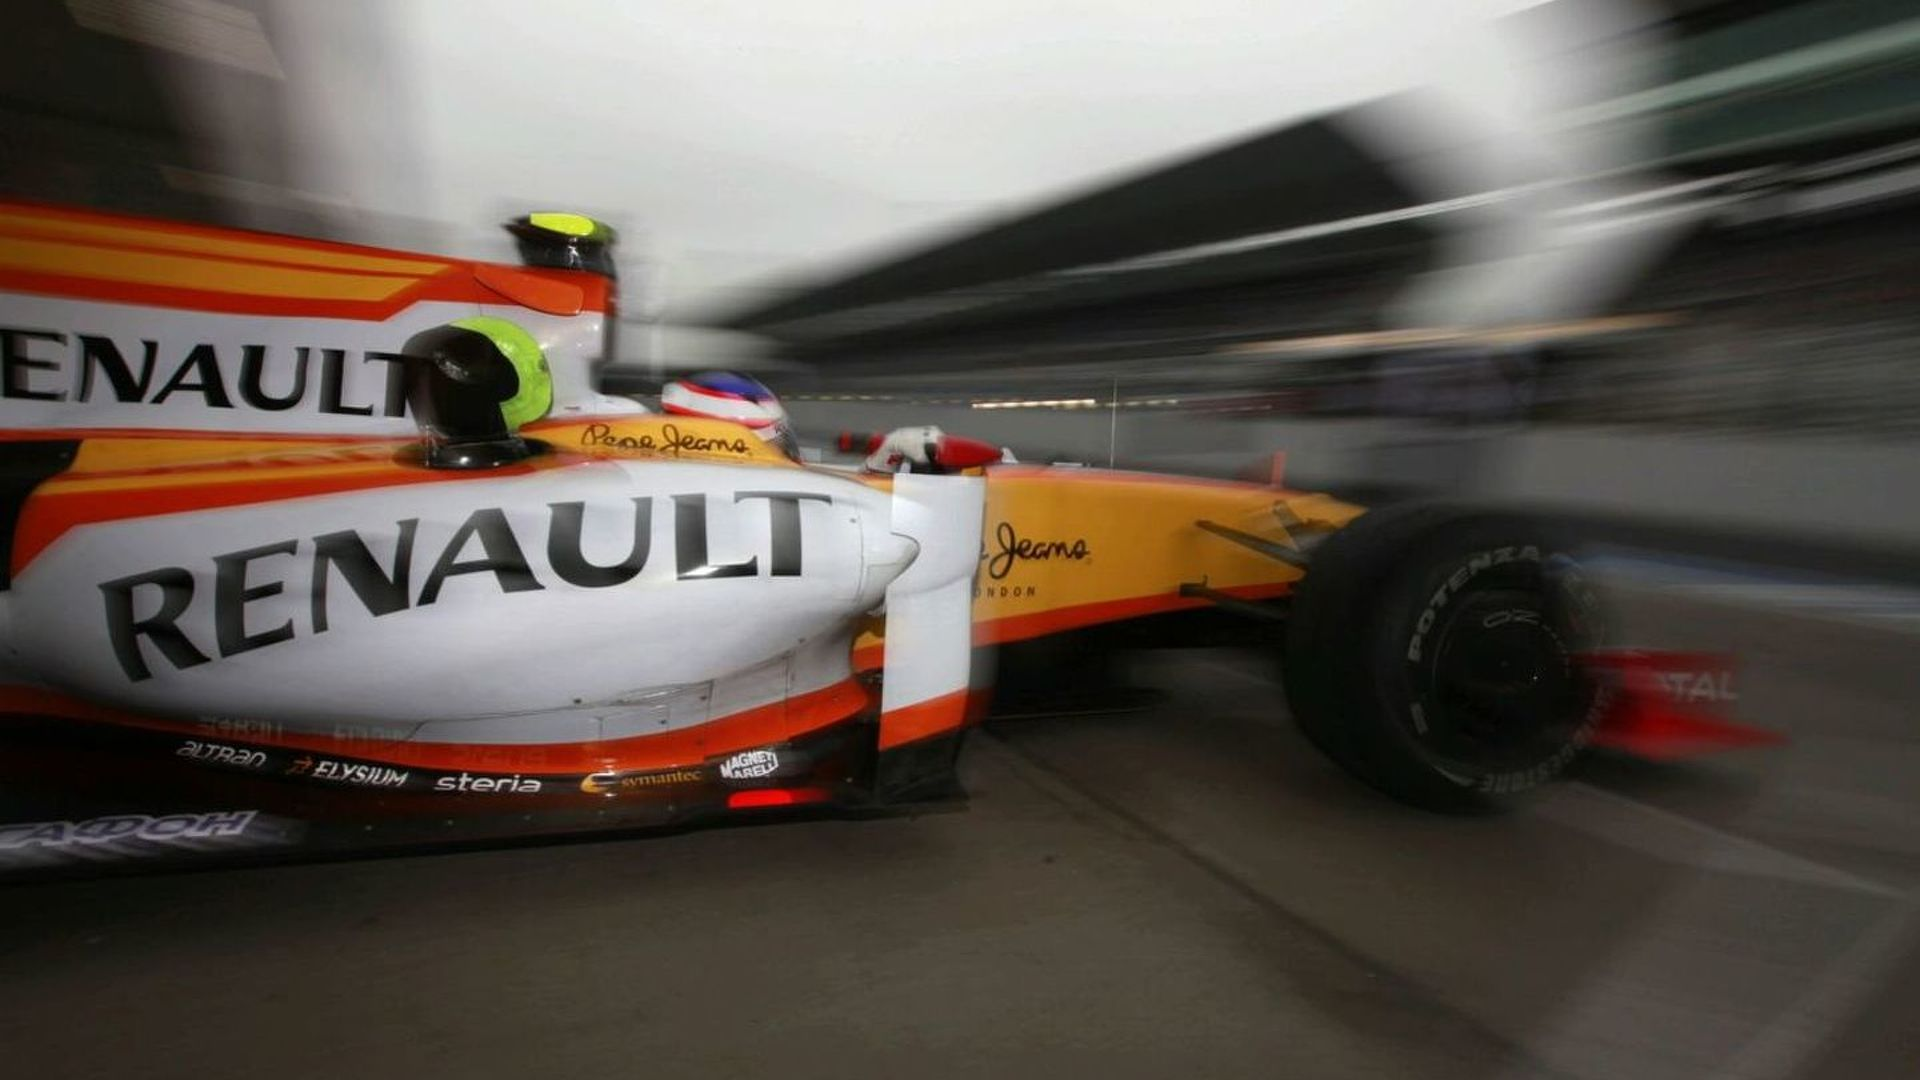 Ecclestone believes Renault to stay in F1